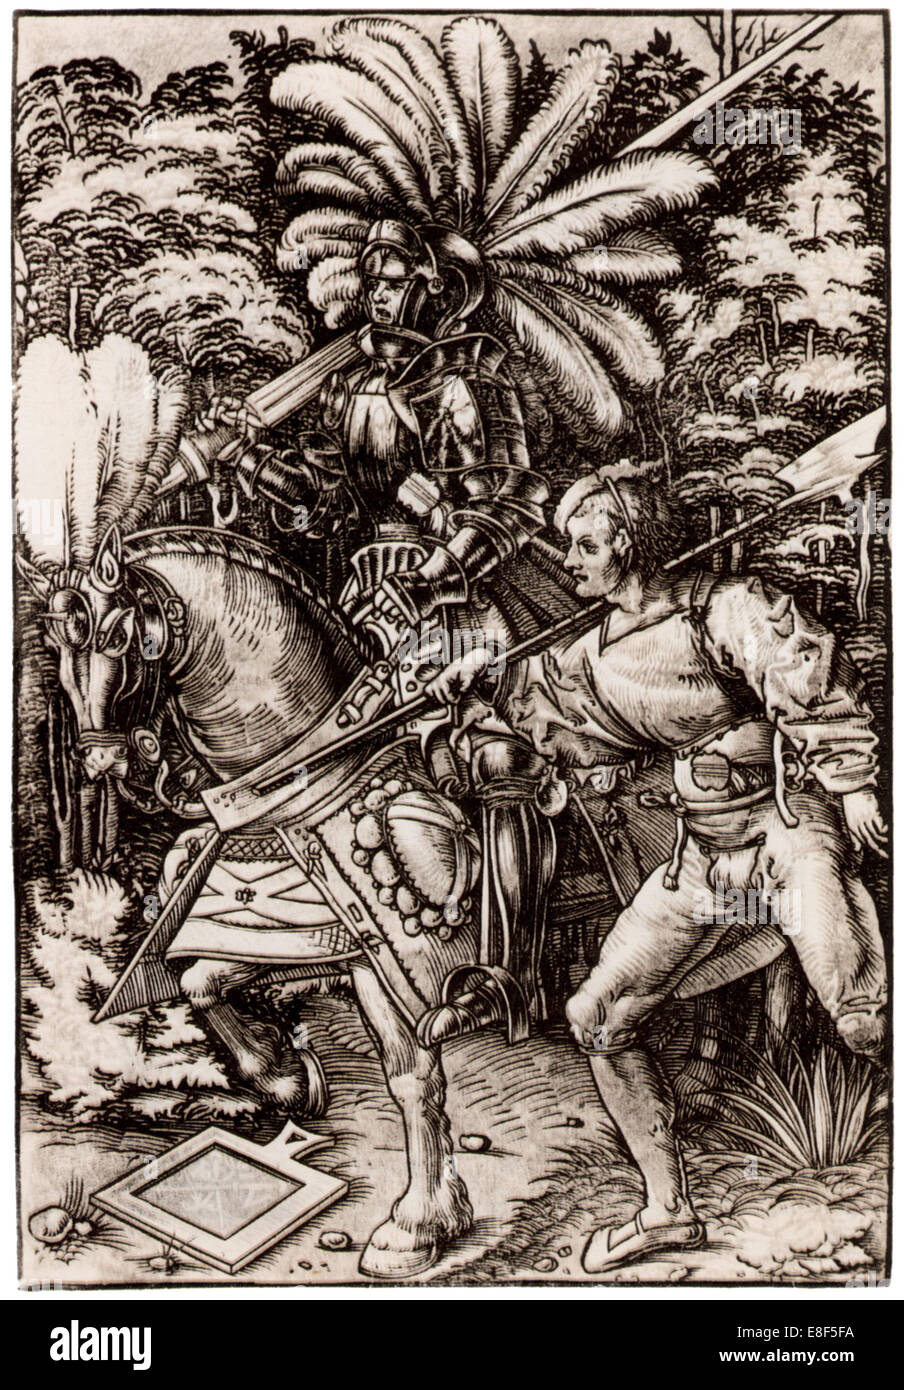 Knight and Halberdier. Artist: Wechtlin, Hans (Johannes) (active 1502-